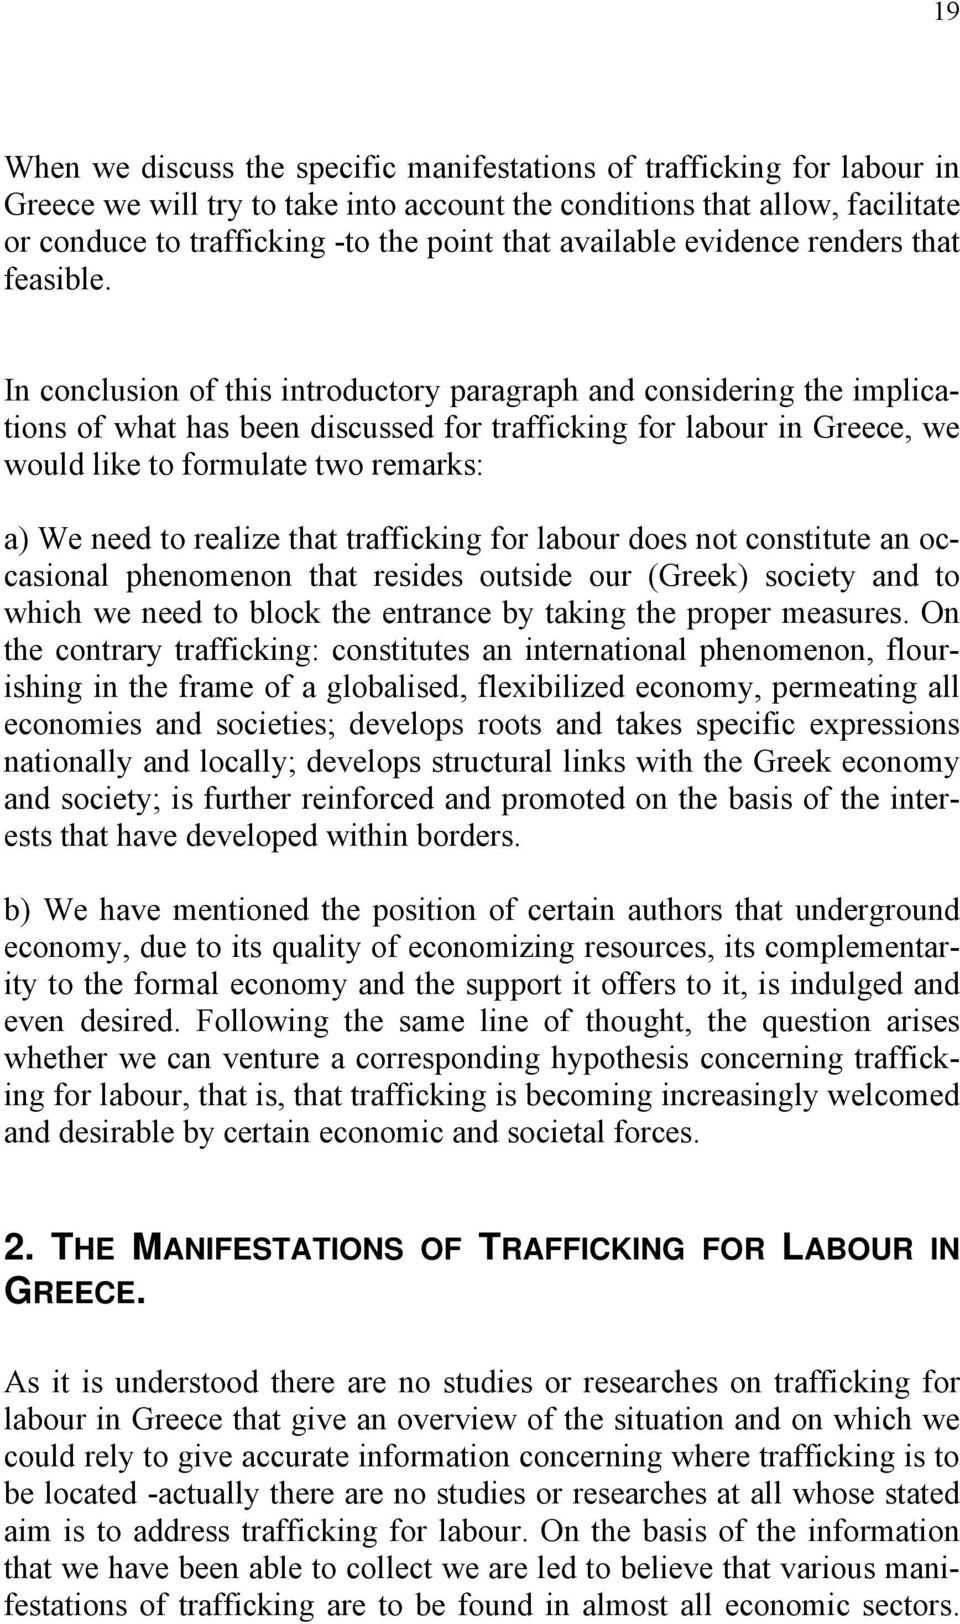 In conclusion of this introductory paragraph and considering the implications of what has been discussed for trafficking for labour in Greece, we would like to formulate two remarks: a) We need to